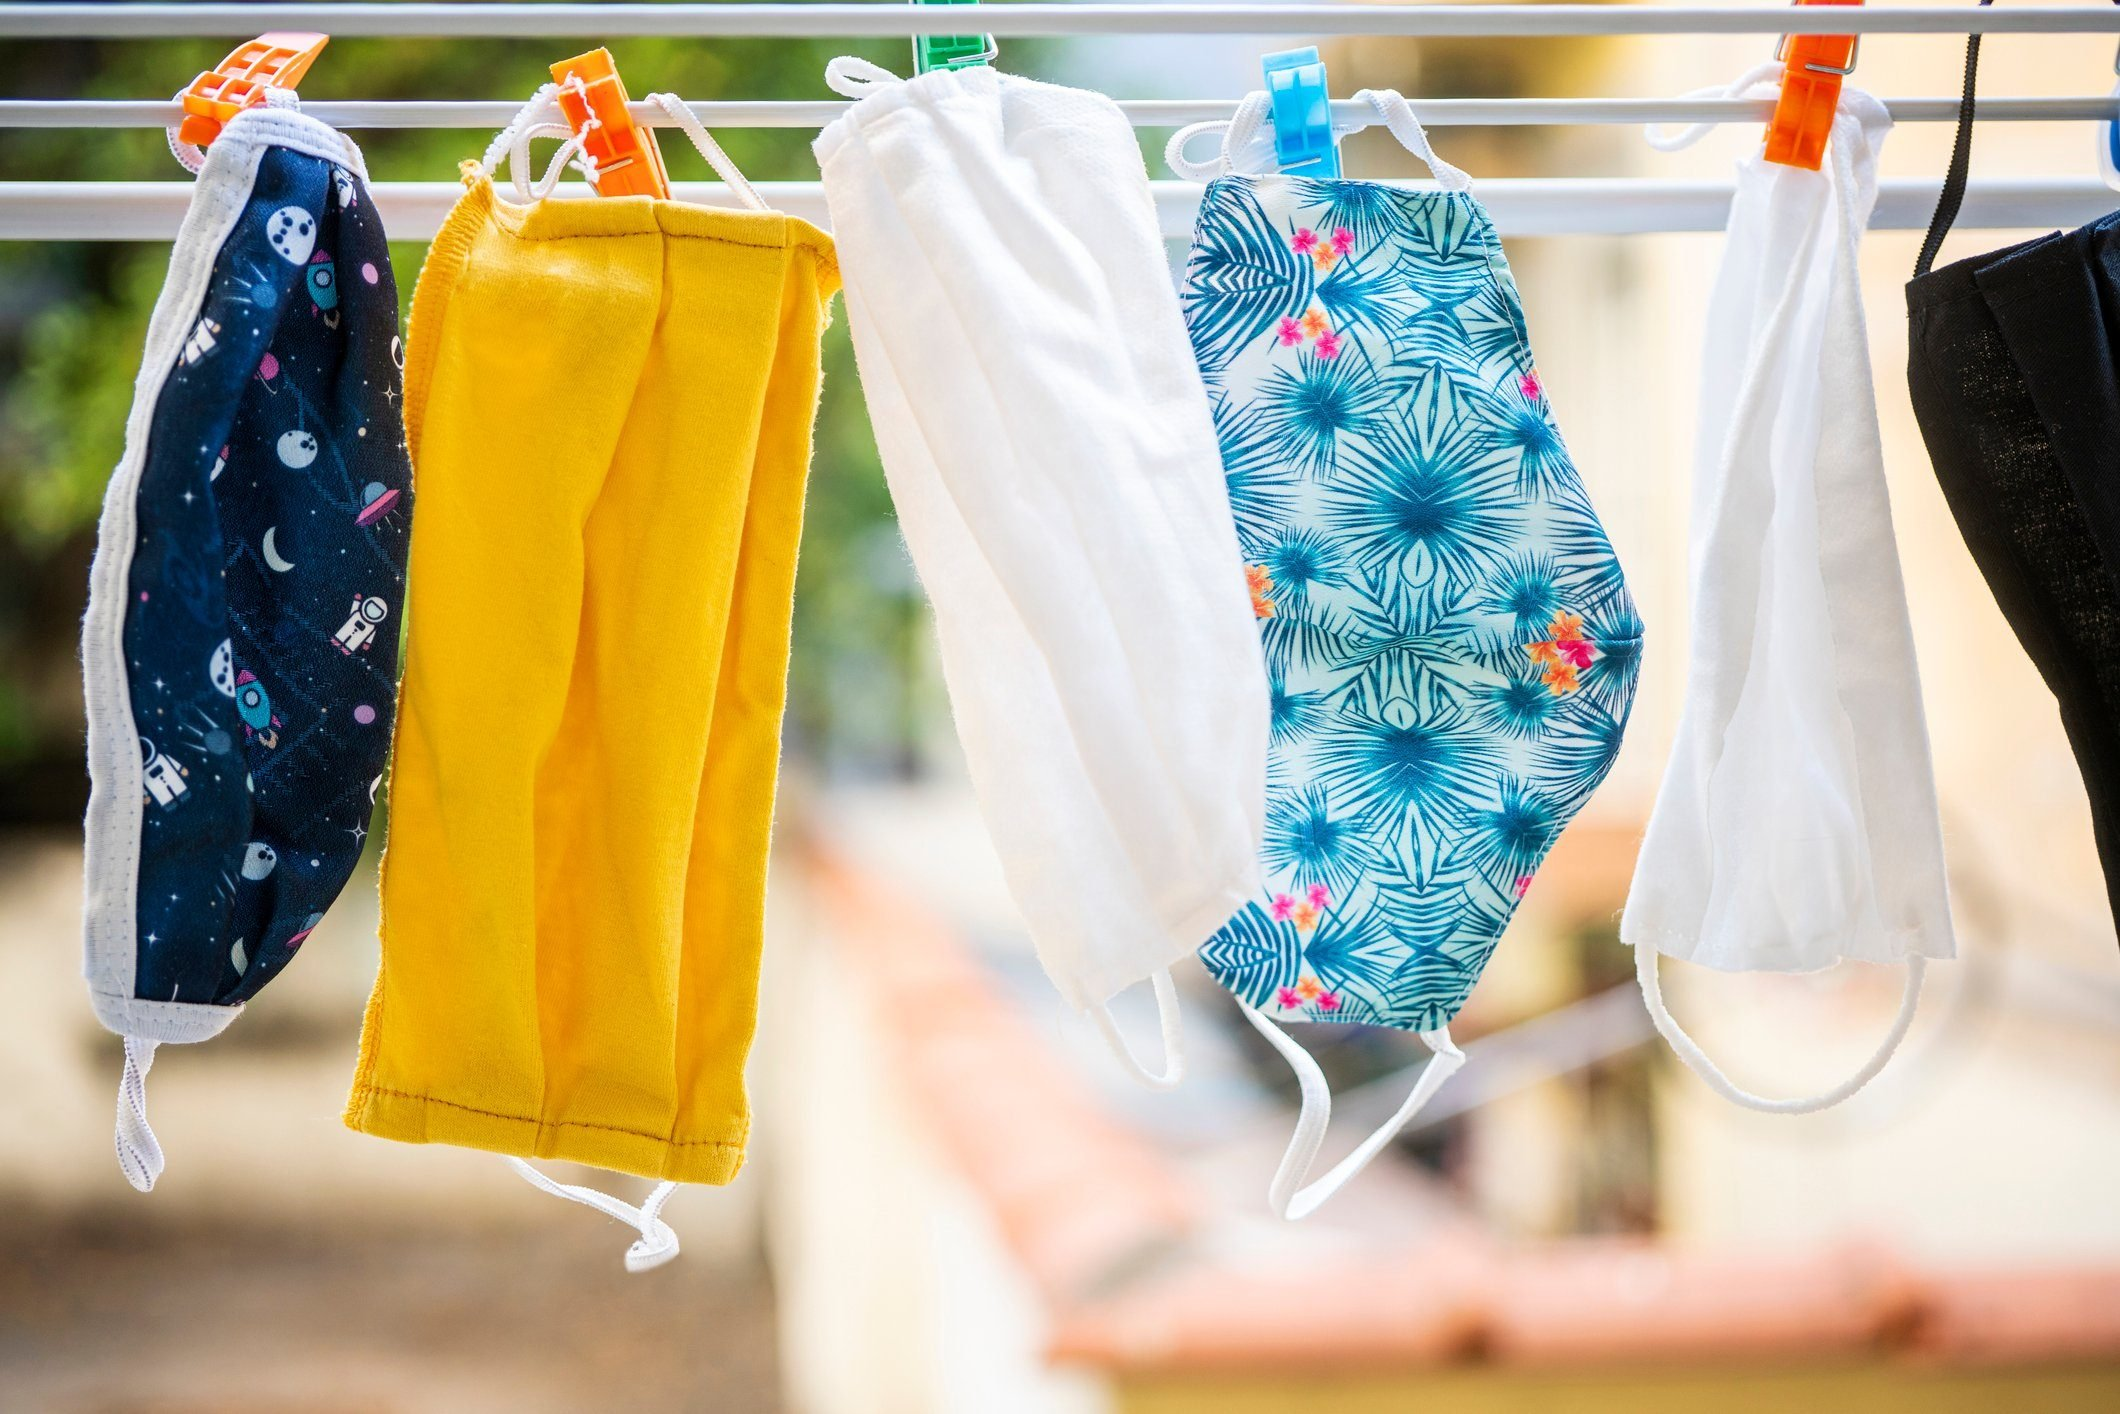 Face masks drying on air hang up on a leash